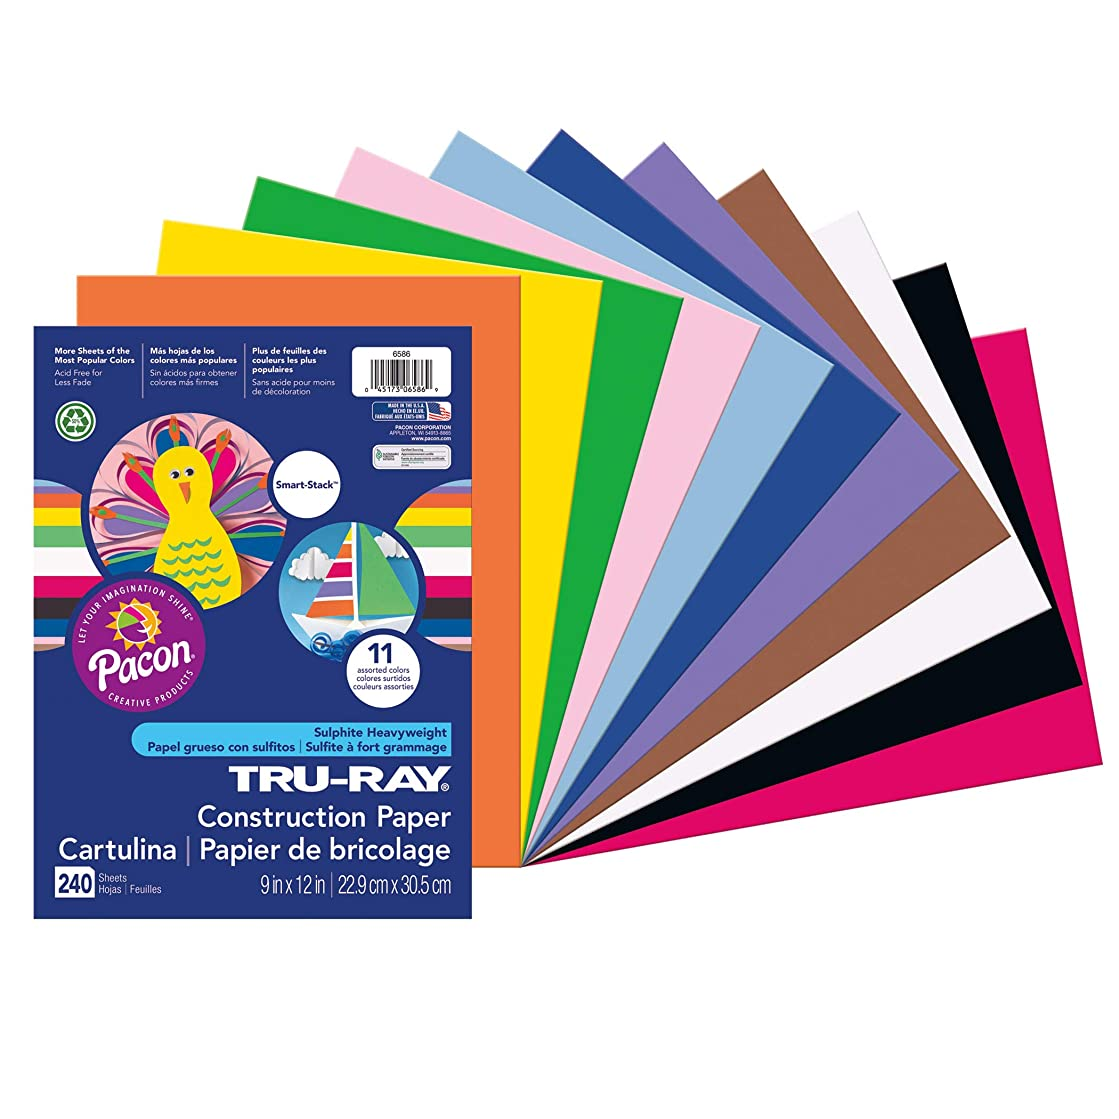 Tru-Ray PAC6586 Construction Paper Smart-Stack, 11 Assorted Colors, 9